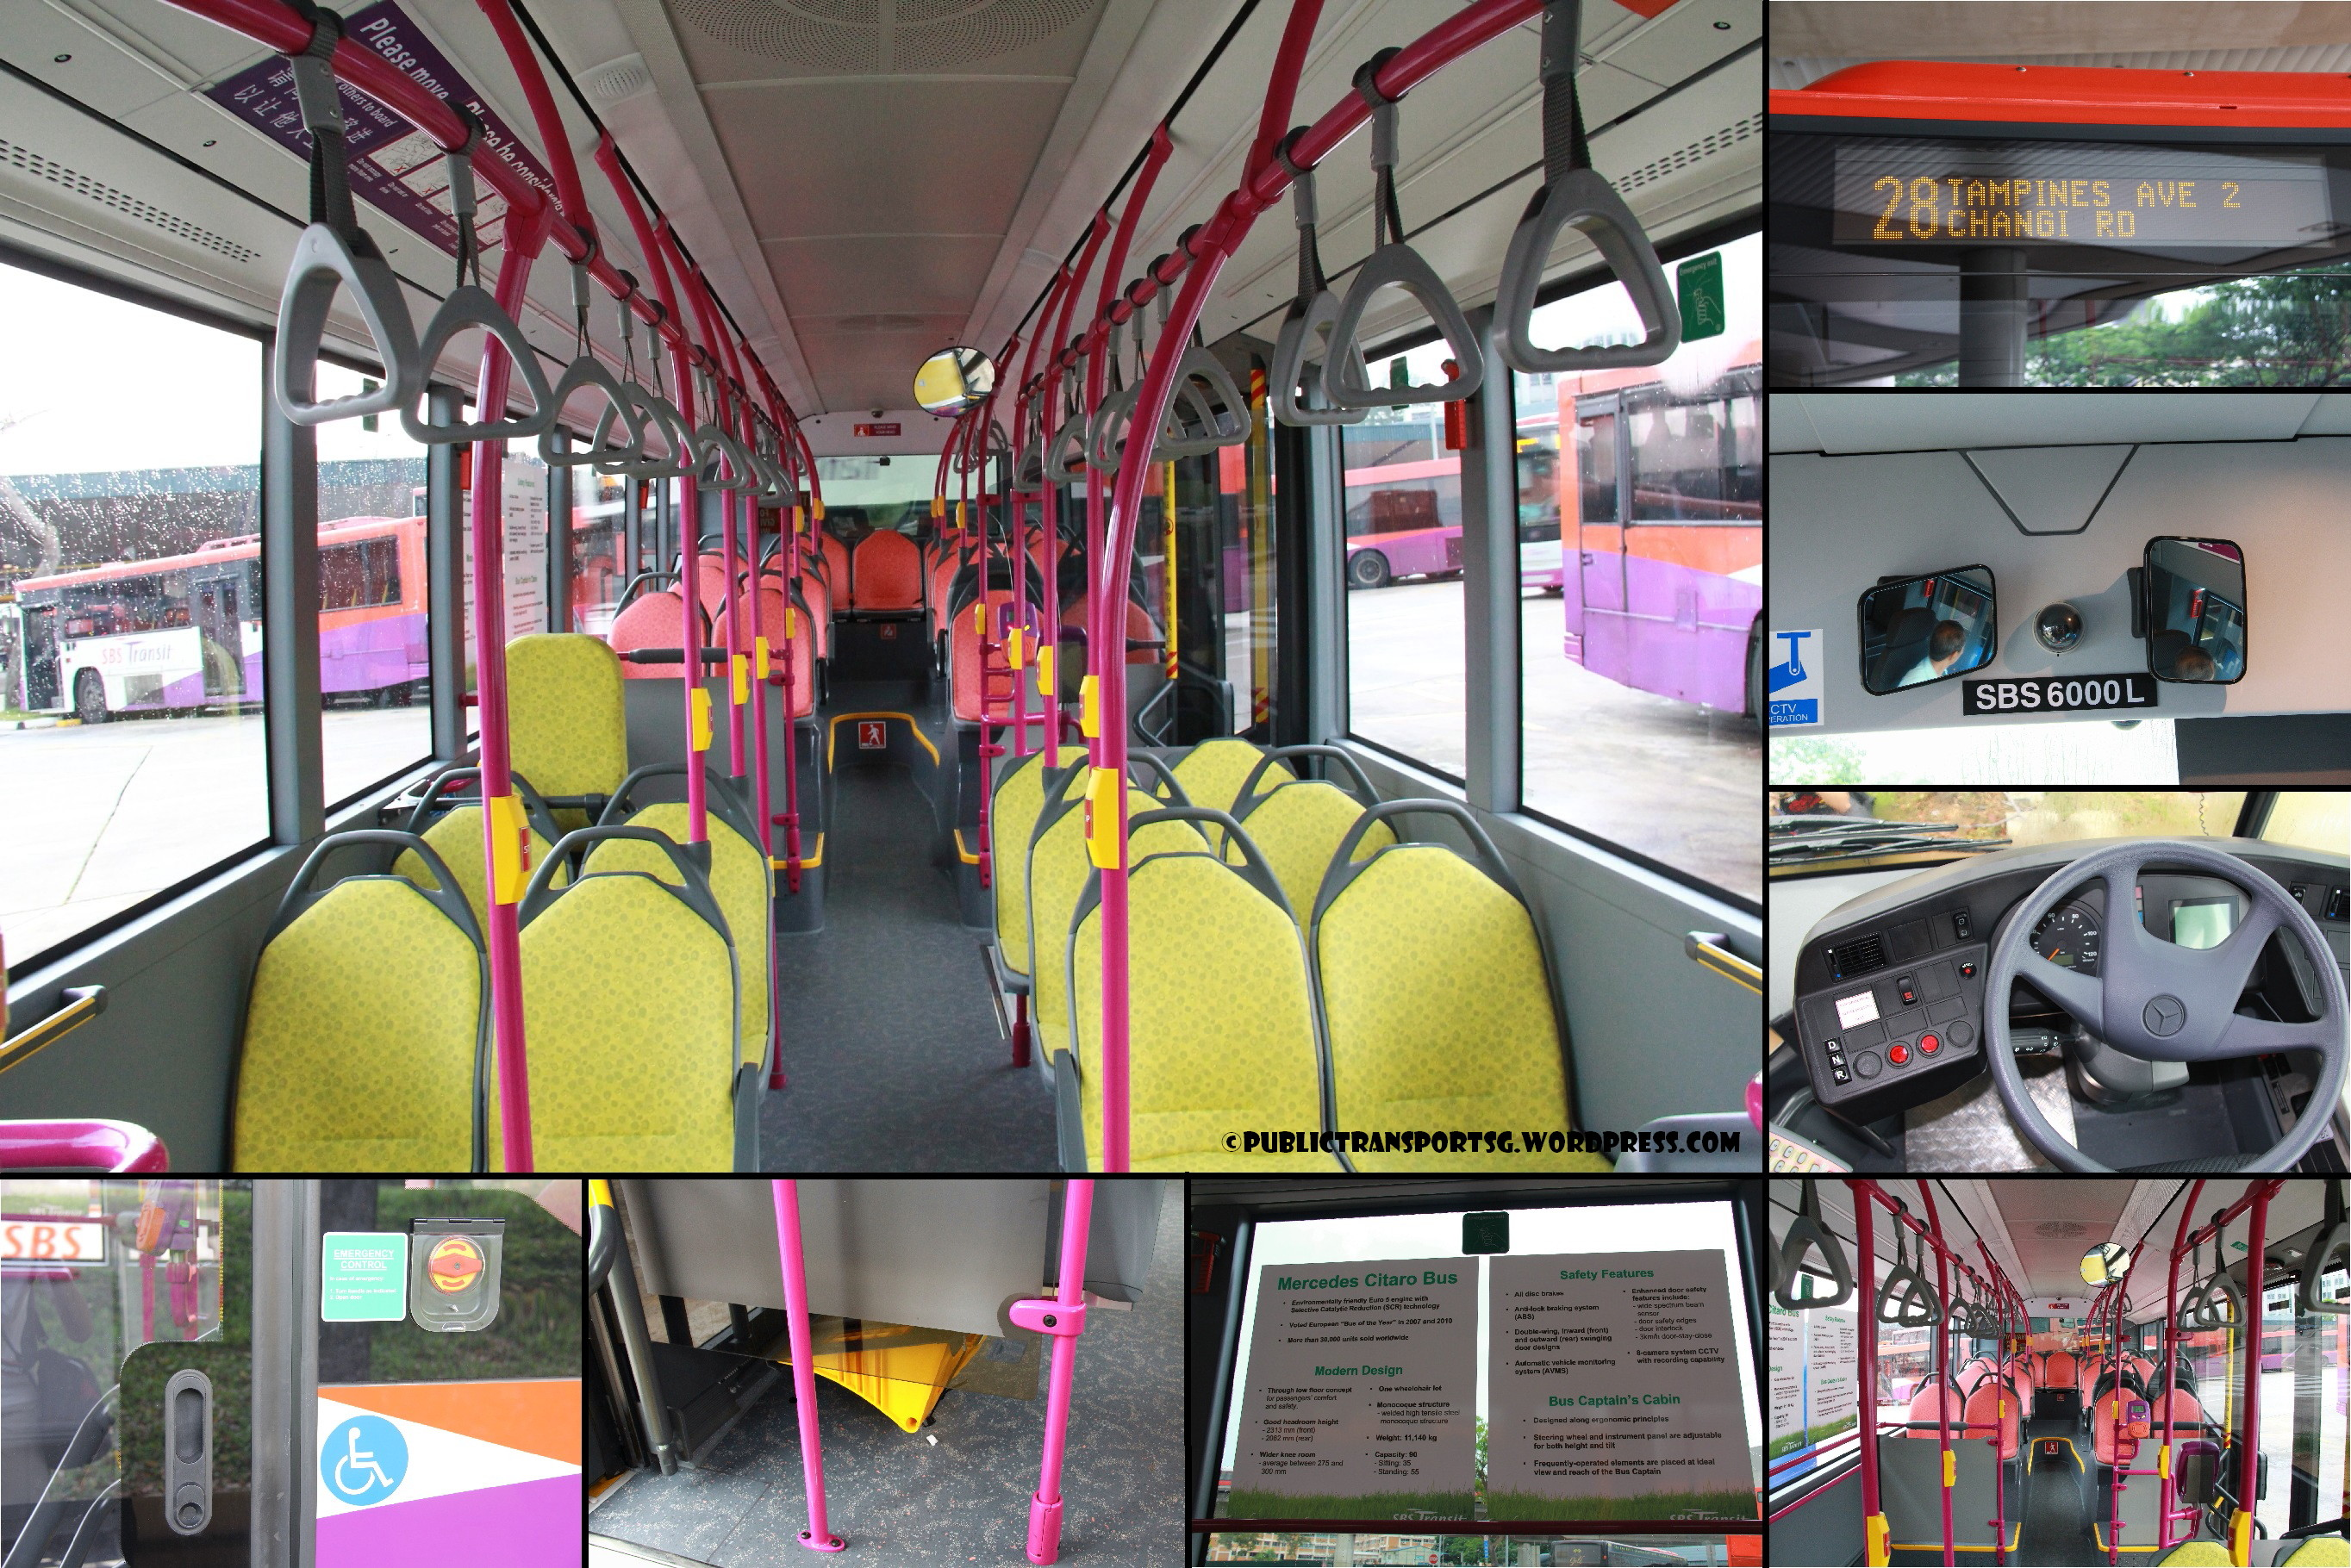 SBS6000L's interior. Click for larger image.